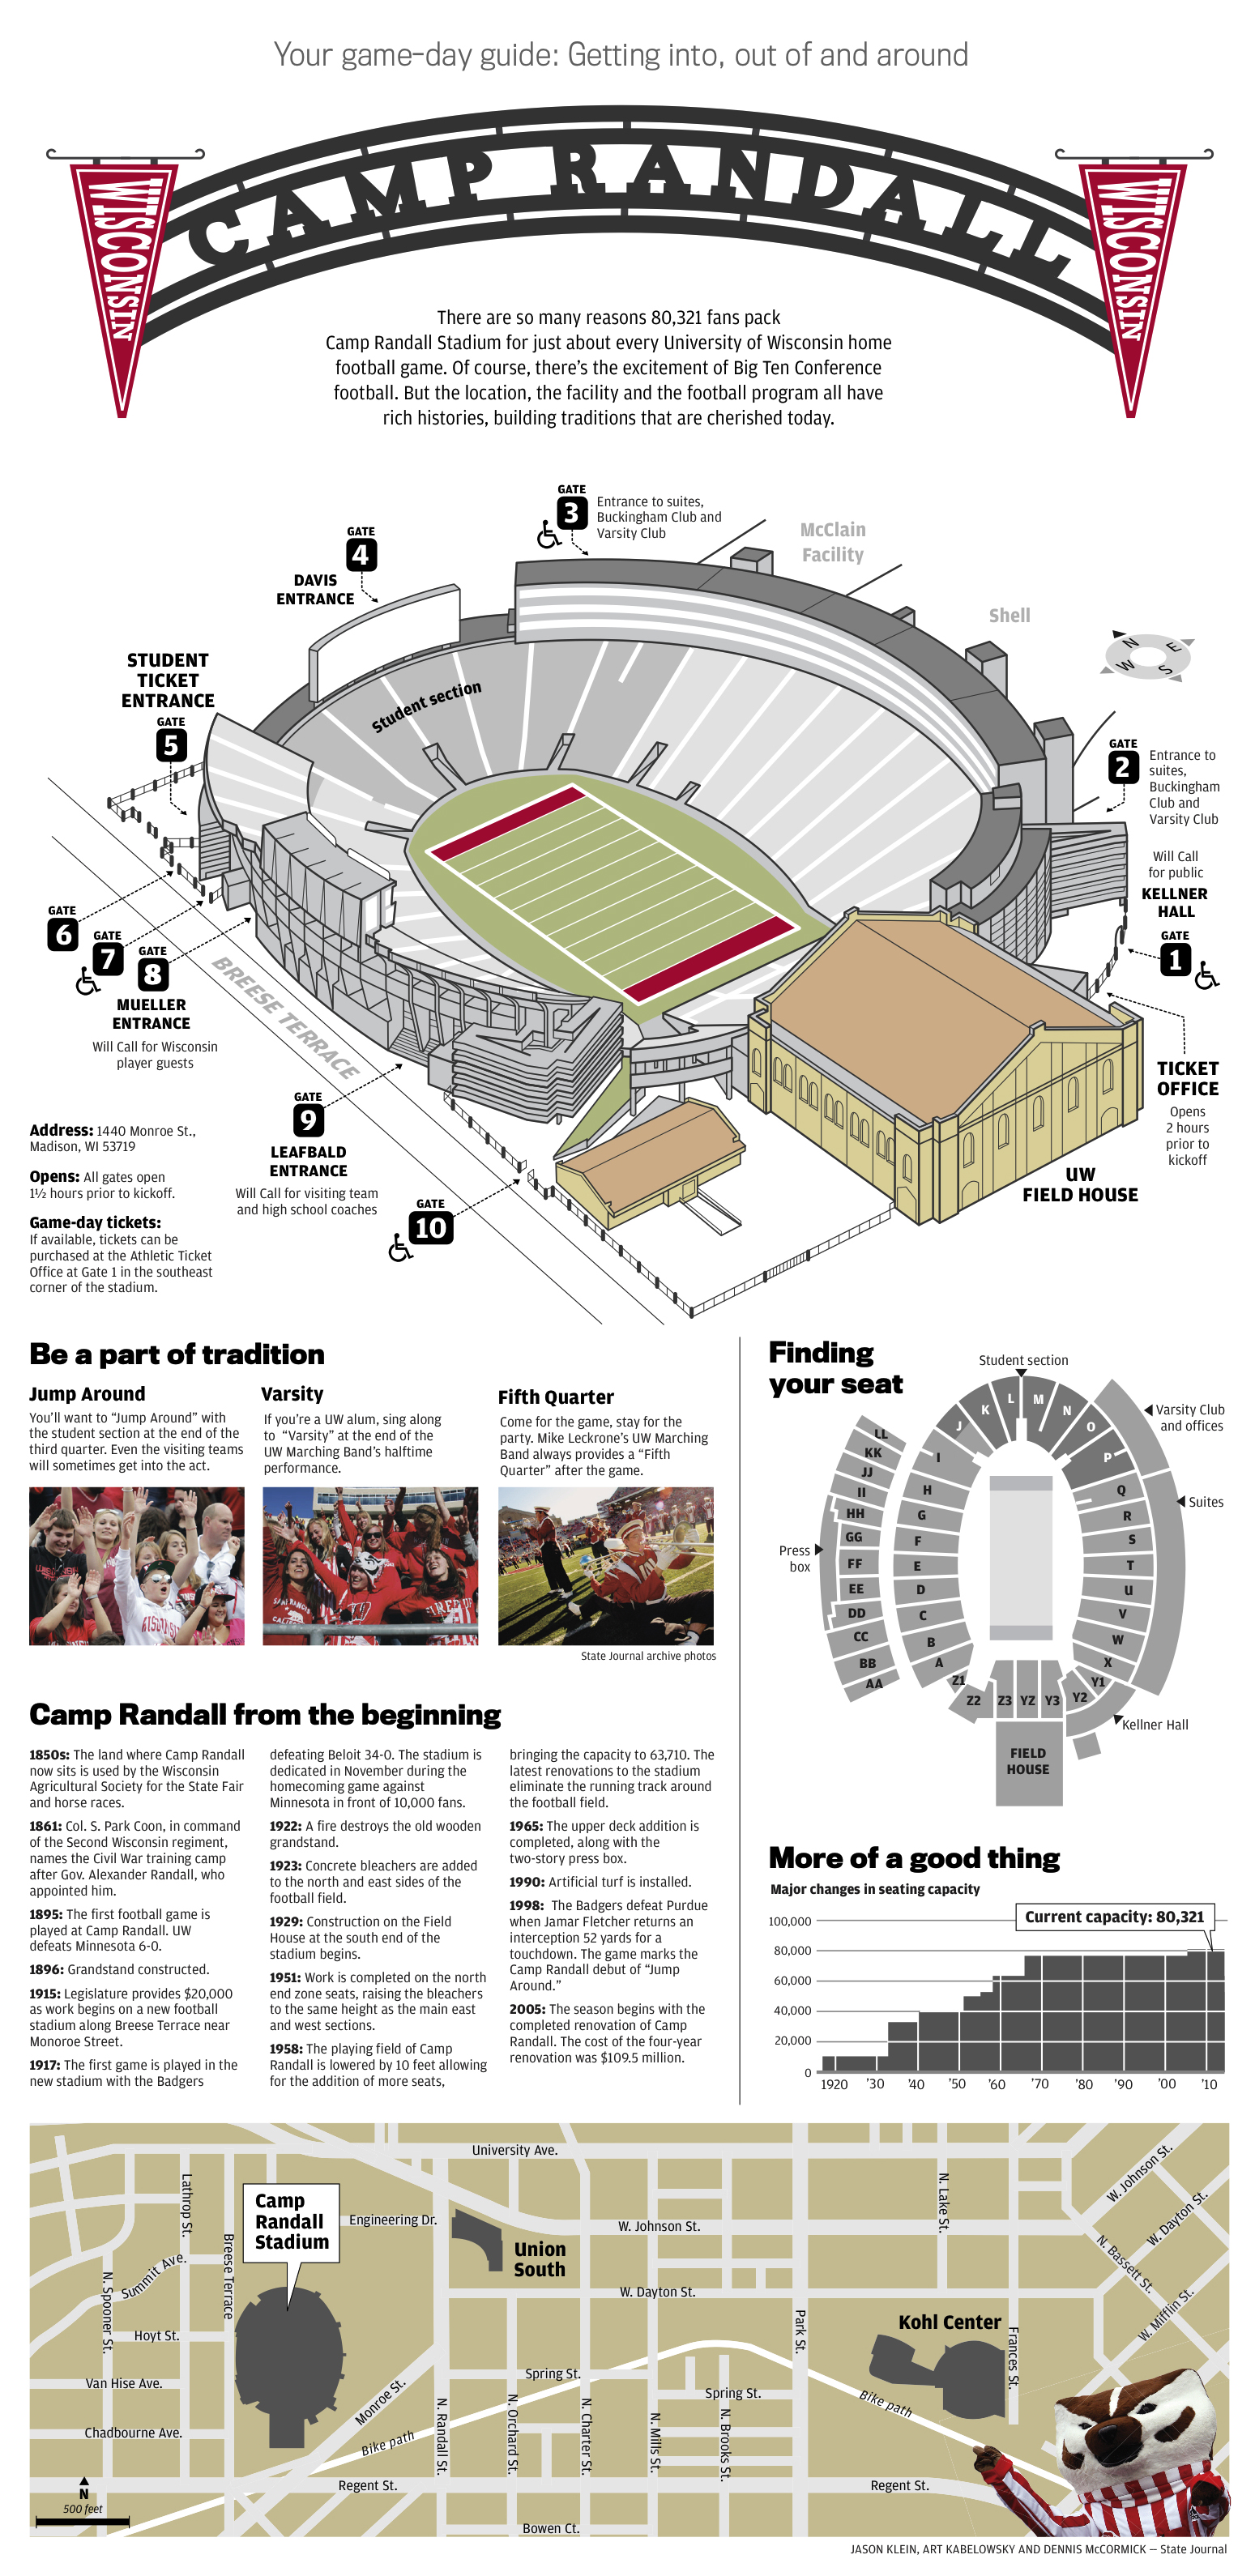 Your guide to Camp Randall Stadium